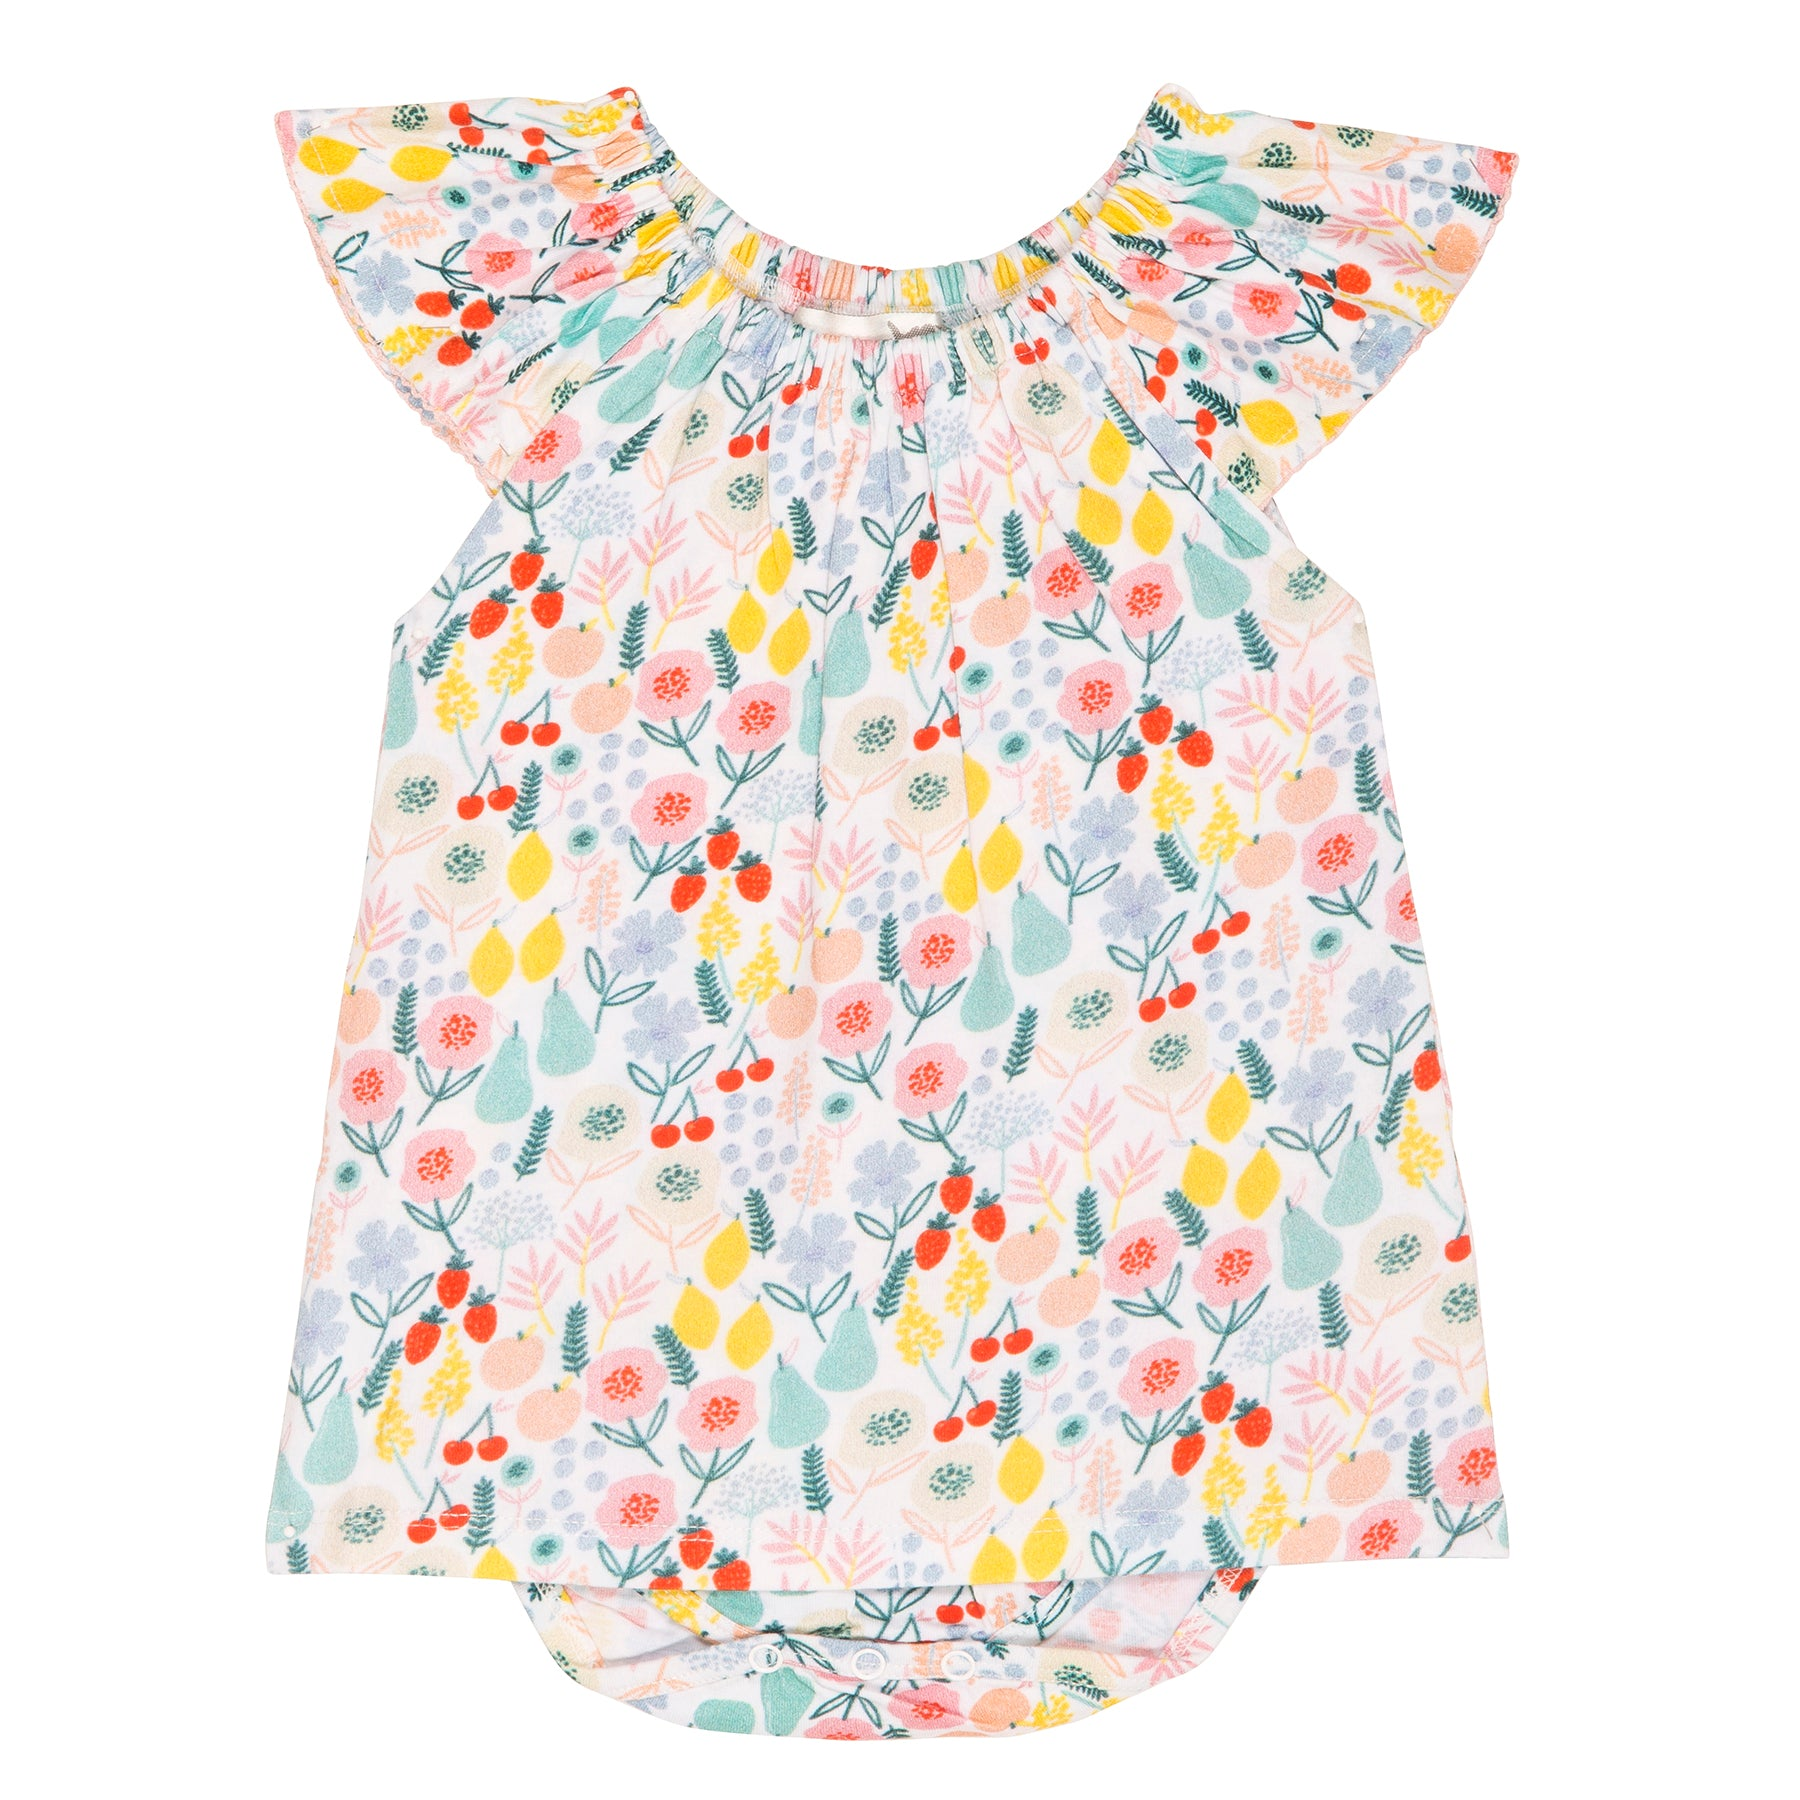 Floral fruit baby dress with ruffle sleeve